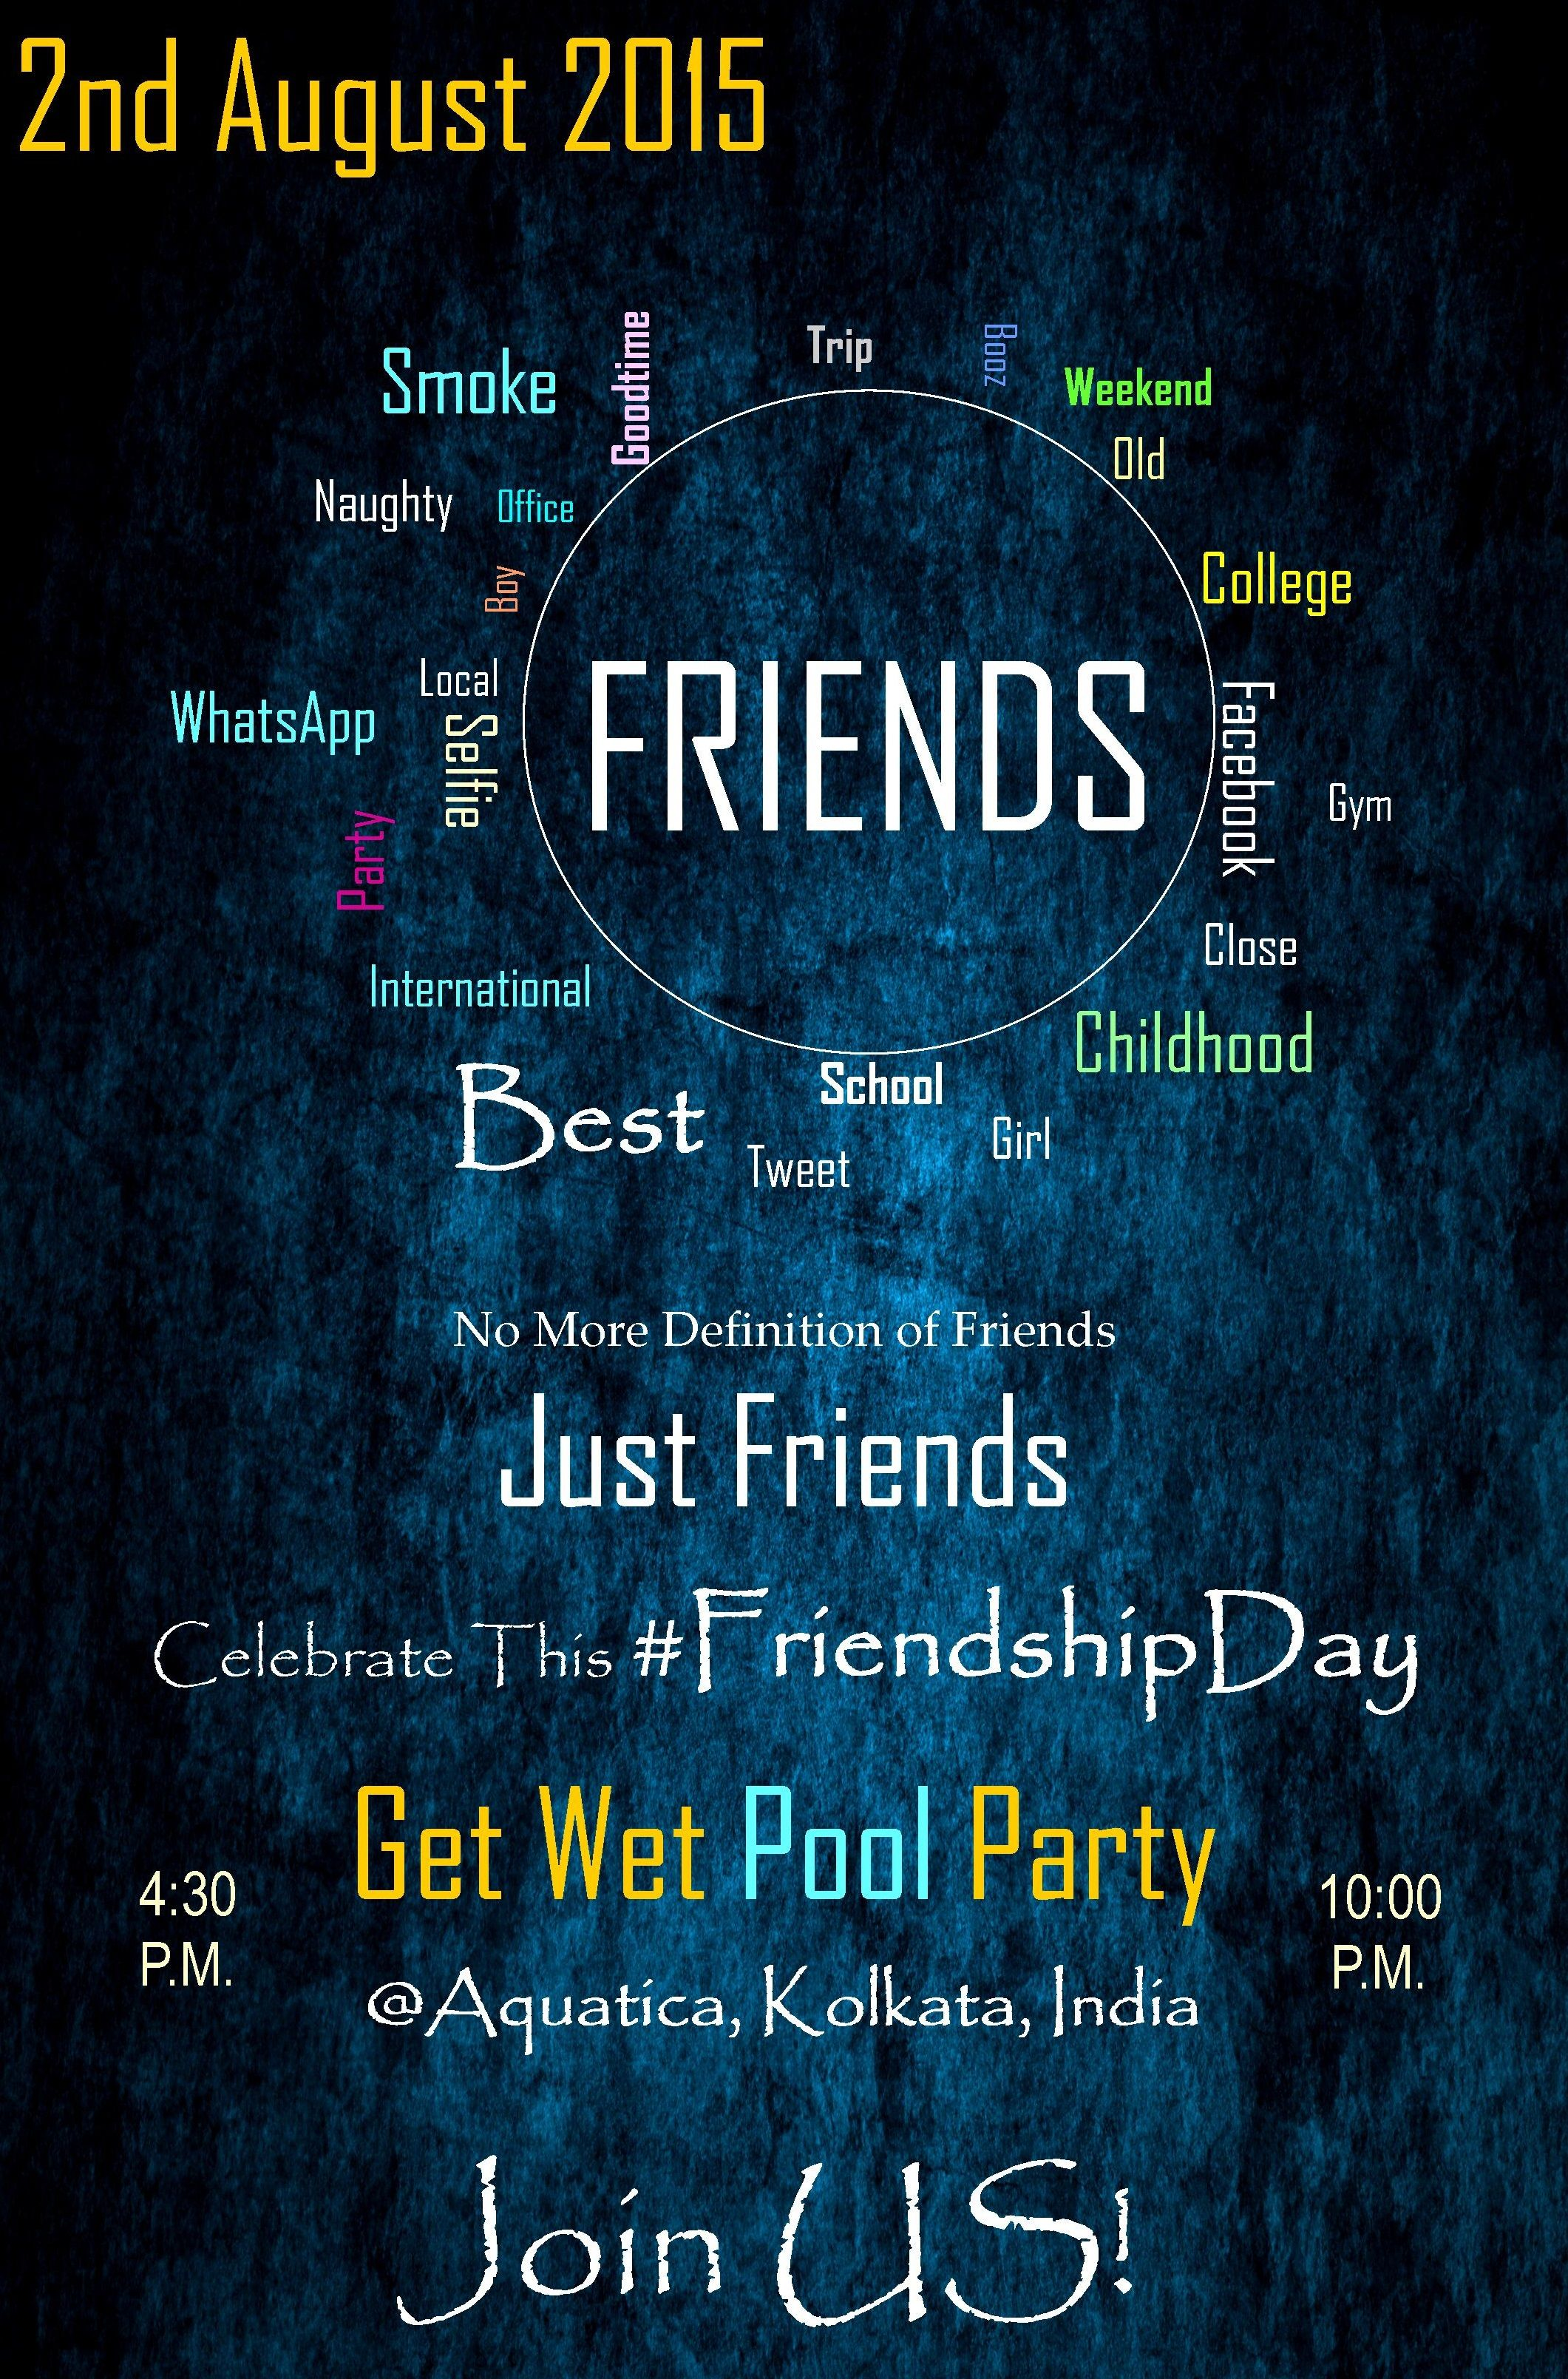 Poster design definition - Event Poster Design No More Definition Of Friends Justfriends Leeon International Management Present Get Wet Pool